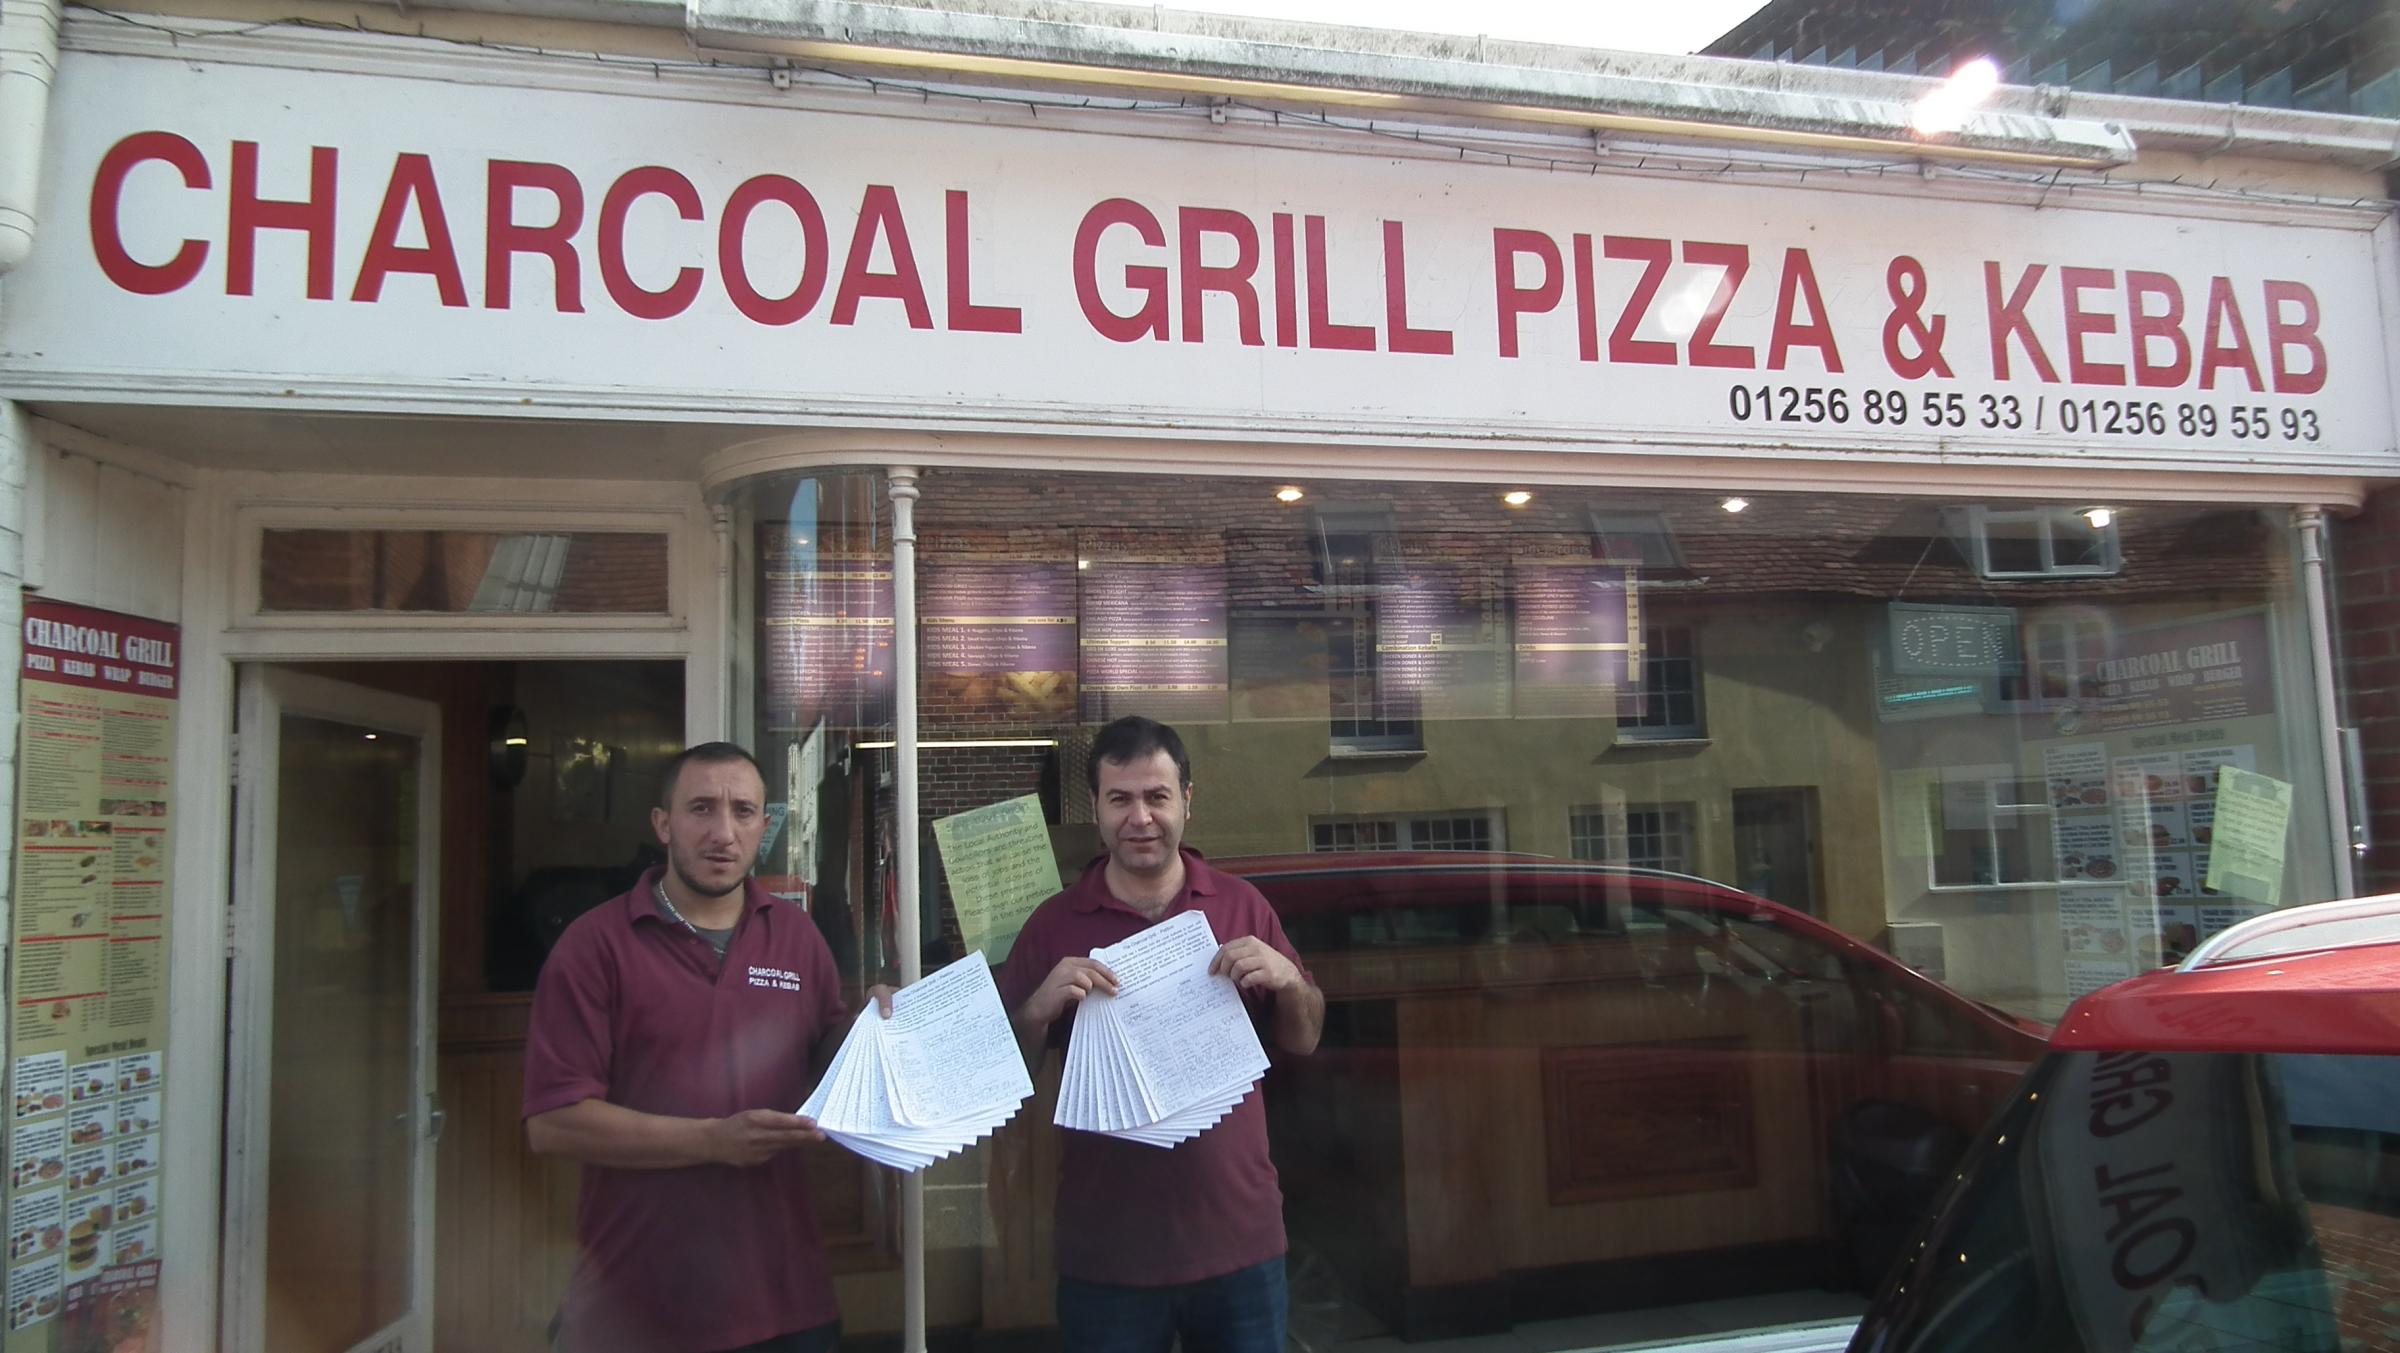 Charcoal Grill staff previously petitioned to stay open late